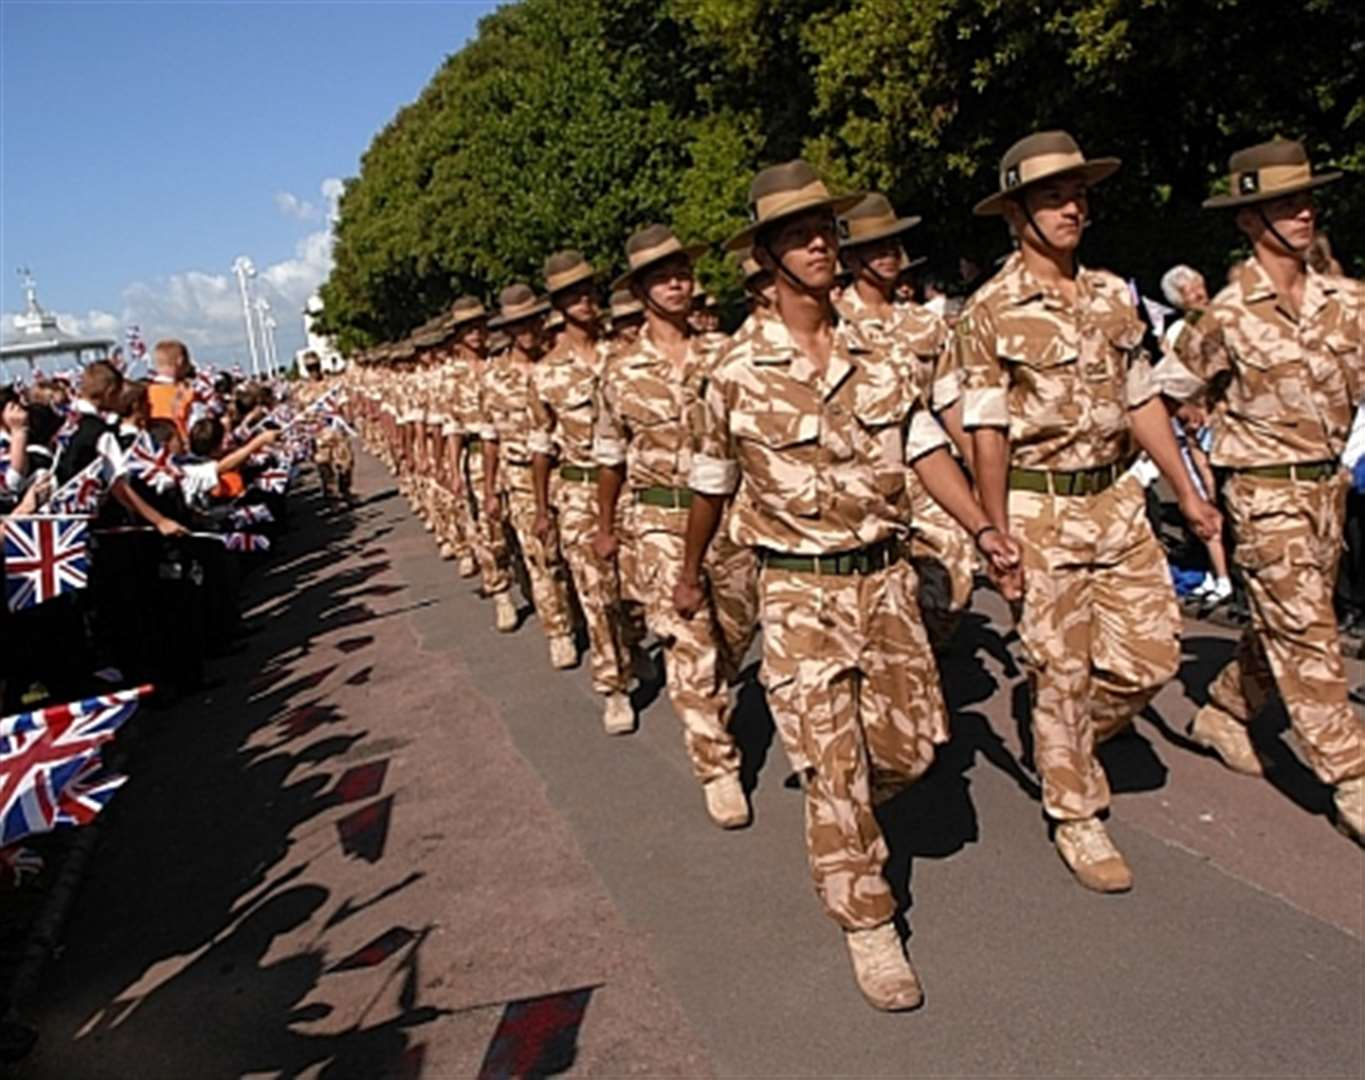 Gurkhas fight pensions battle